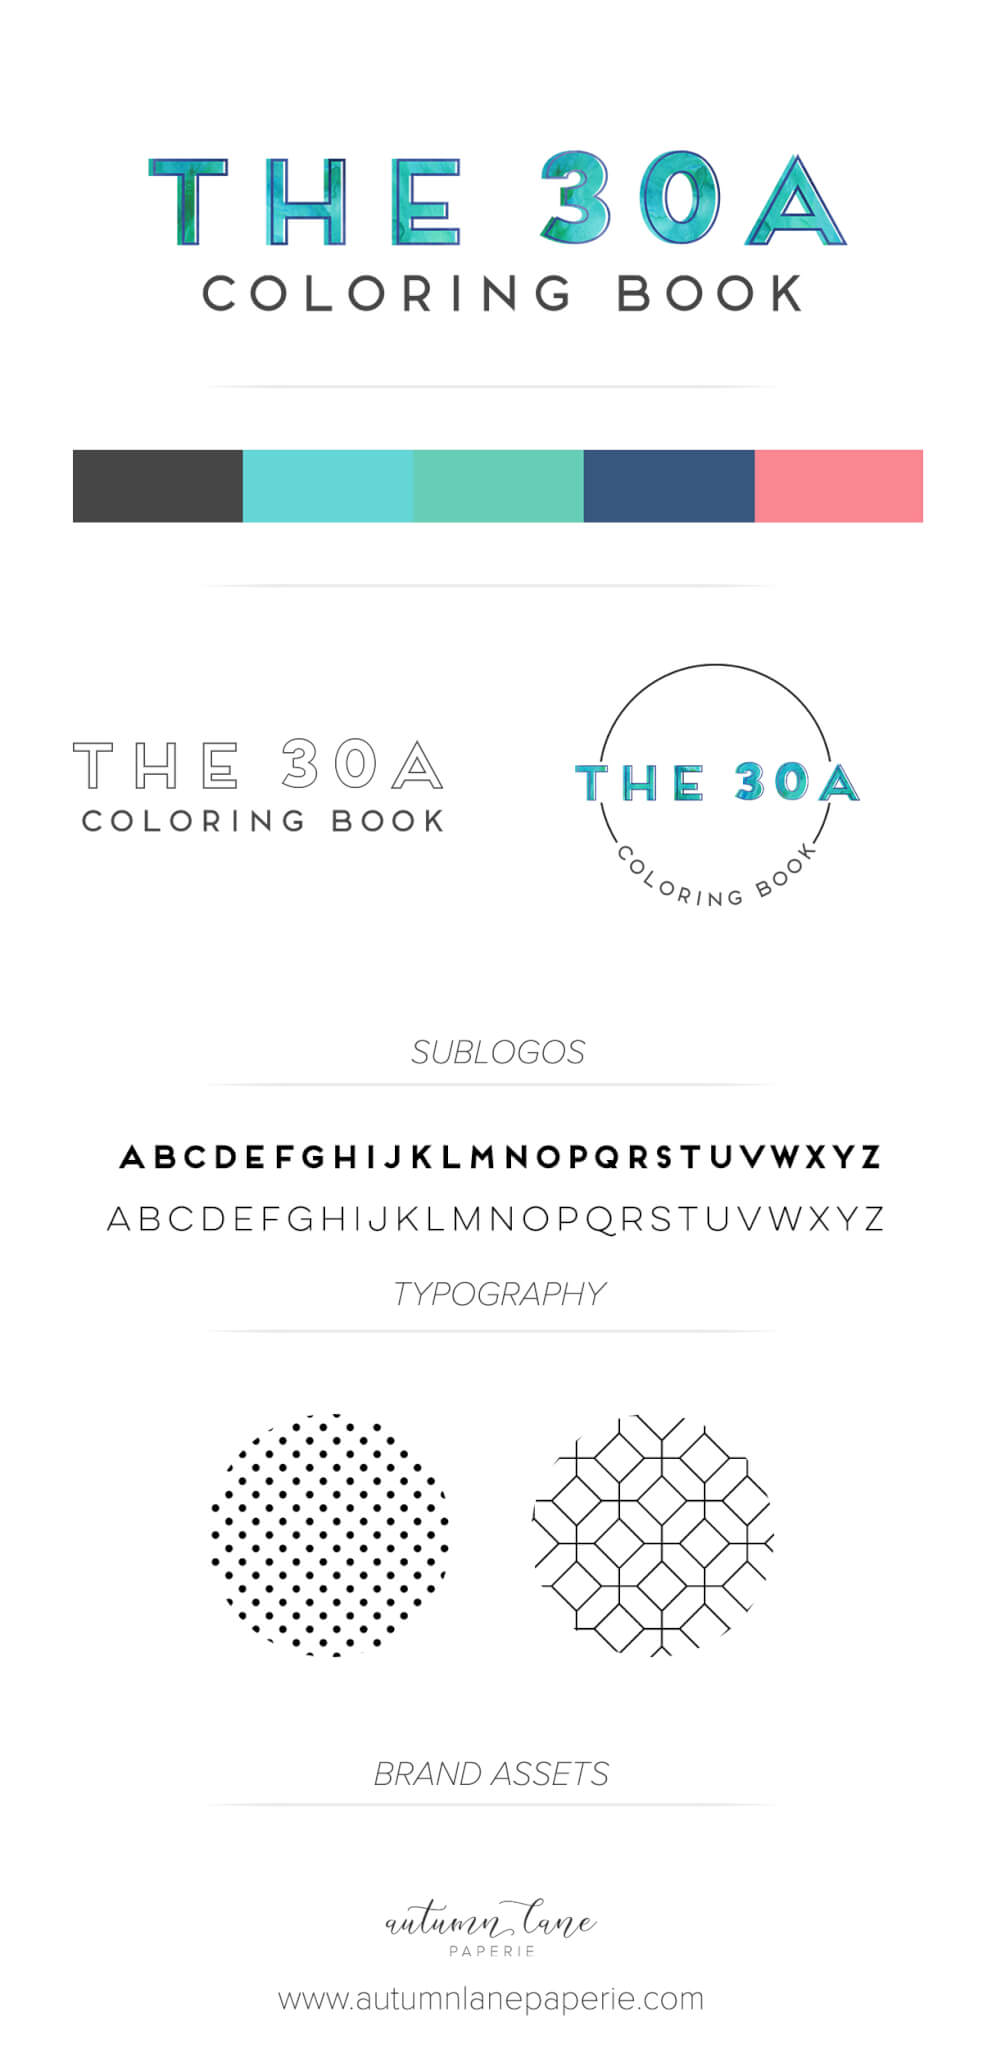 The 30A Coloring Book Brandboard